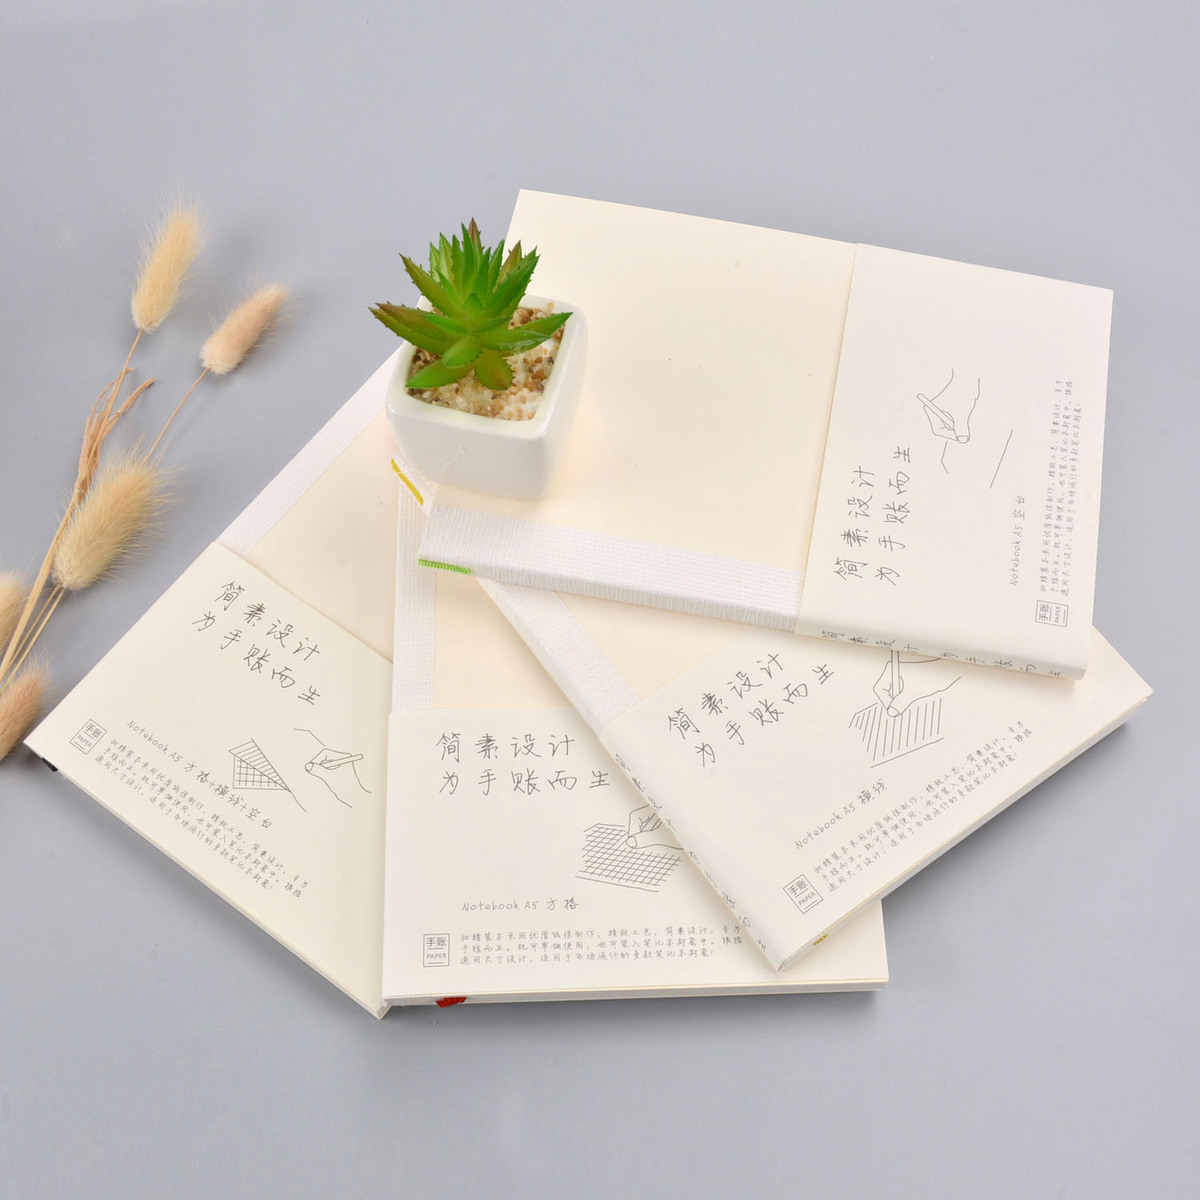 Brand New Planner Insert Diary Refills For A5 A6 Size Notebook Cover Grid Ruled Blank 100g